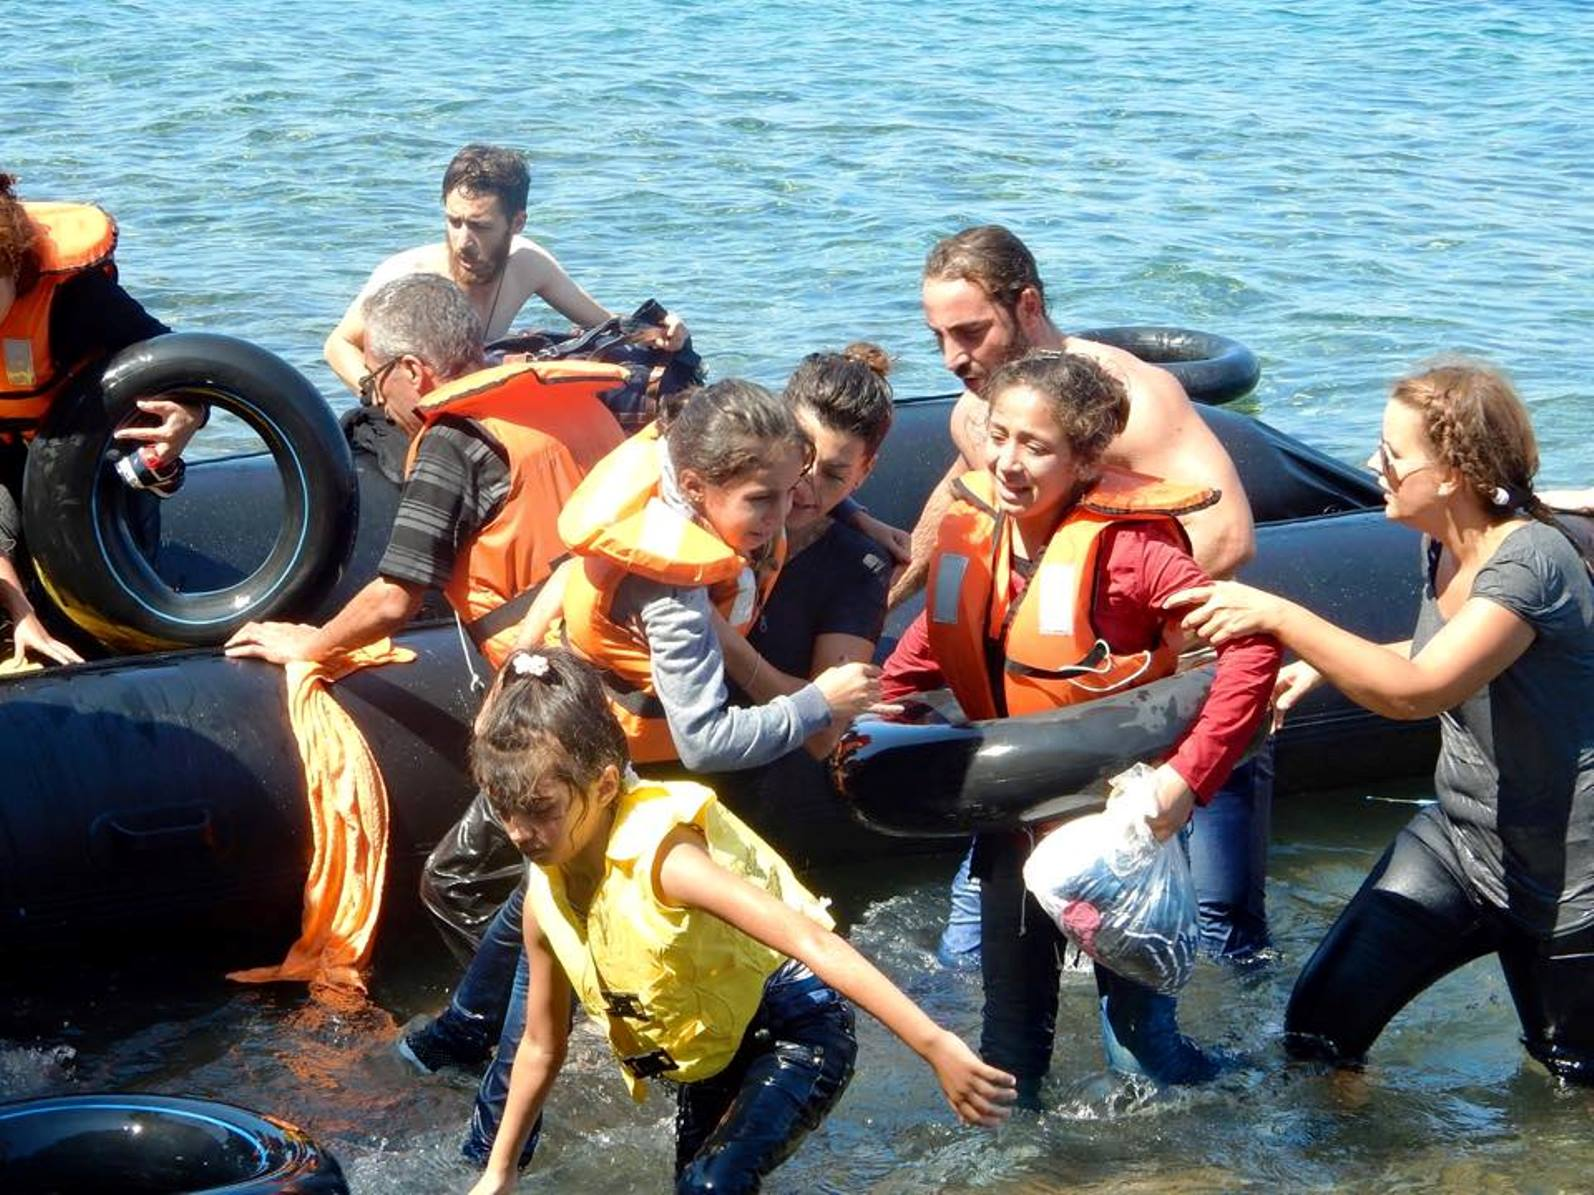 IsraAid volunteers including Naama Gorodischer, center, helping refugees reach the shore after their boat overturned off the Greek coast, September 13, 2015. Photo via Facebook